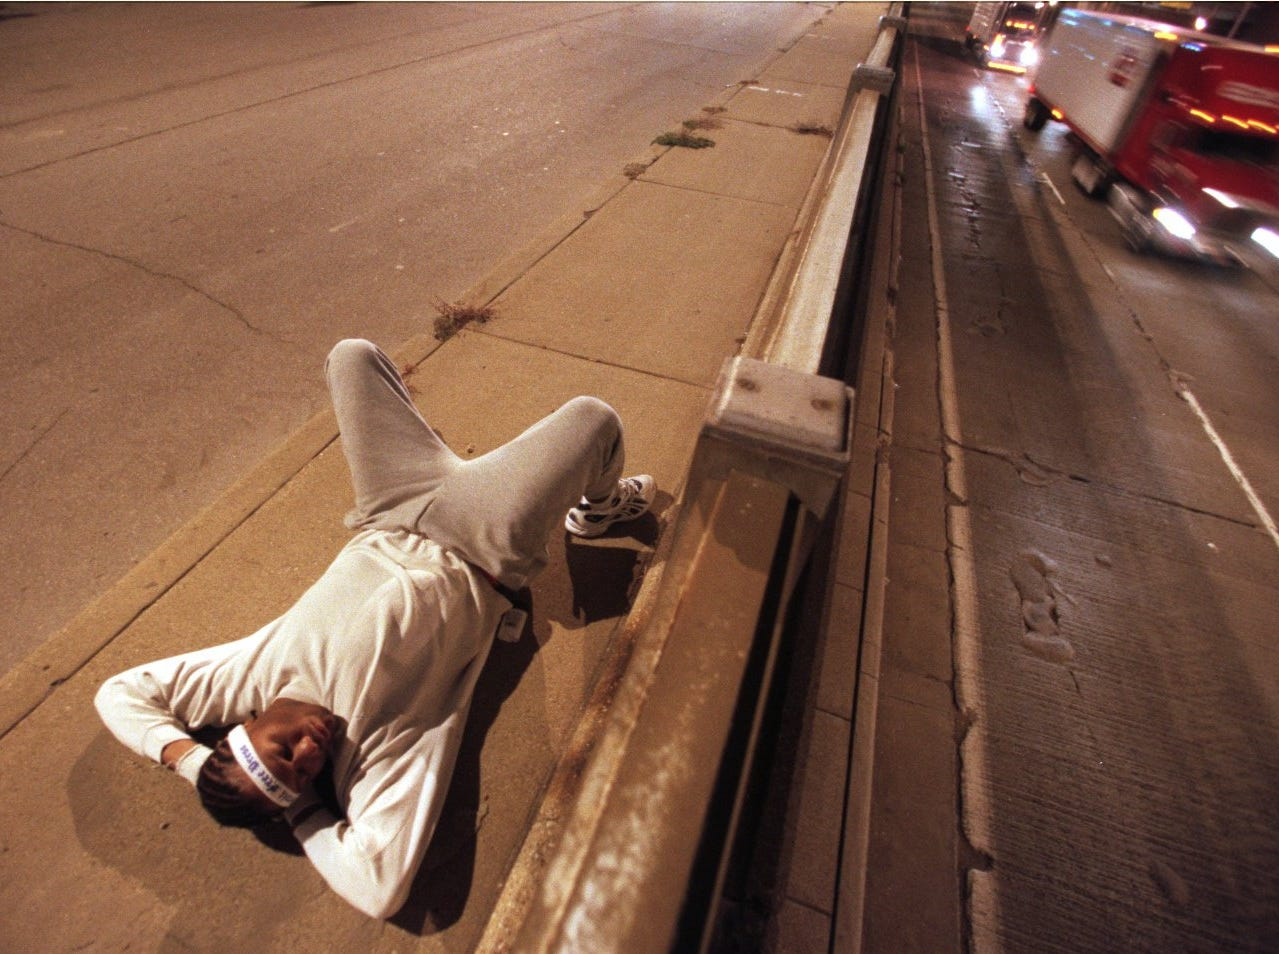 Mike Garacious, of Flint, attempts to get a brief moment of sleep in on Jefferson Ave. before the start of the 23rd annual Detroit Free Press/Flagstar Bank International Marathon Sunday October 15, 2000.